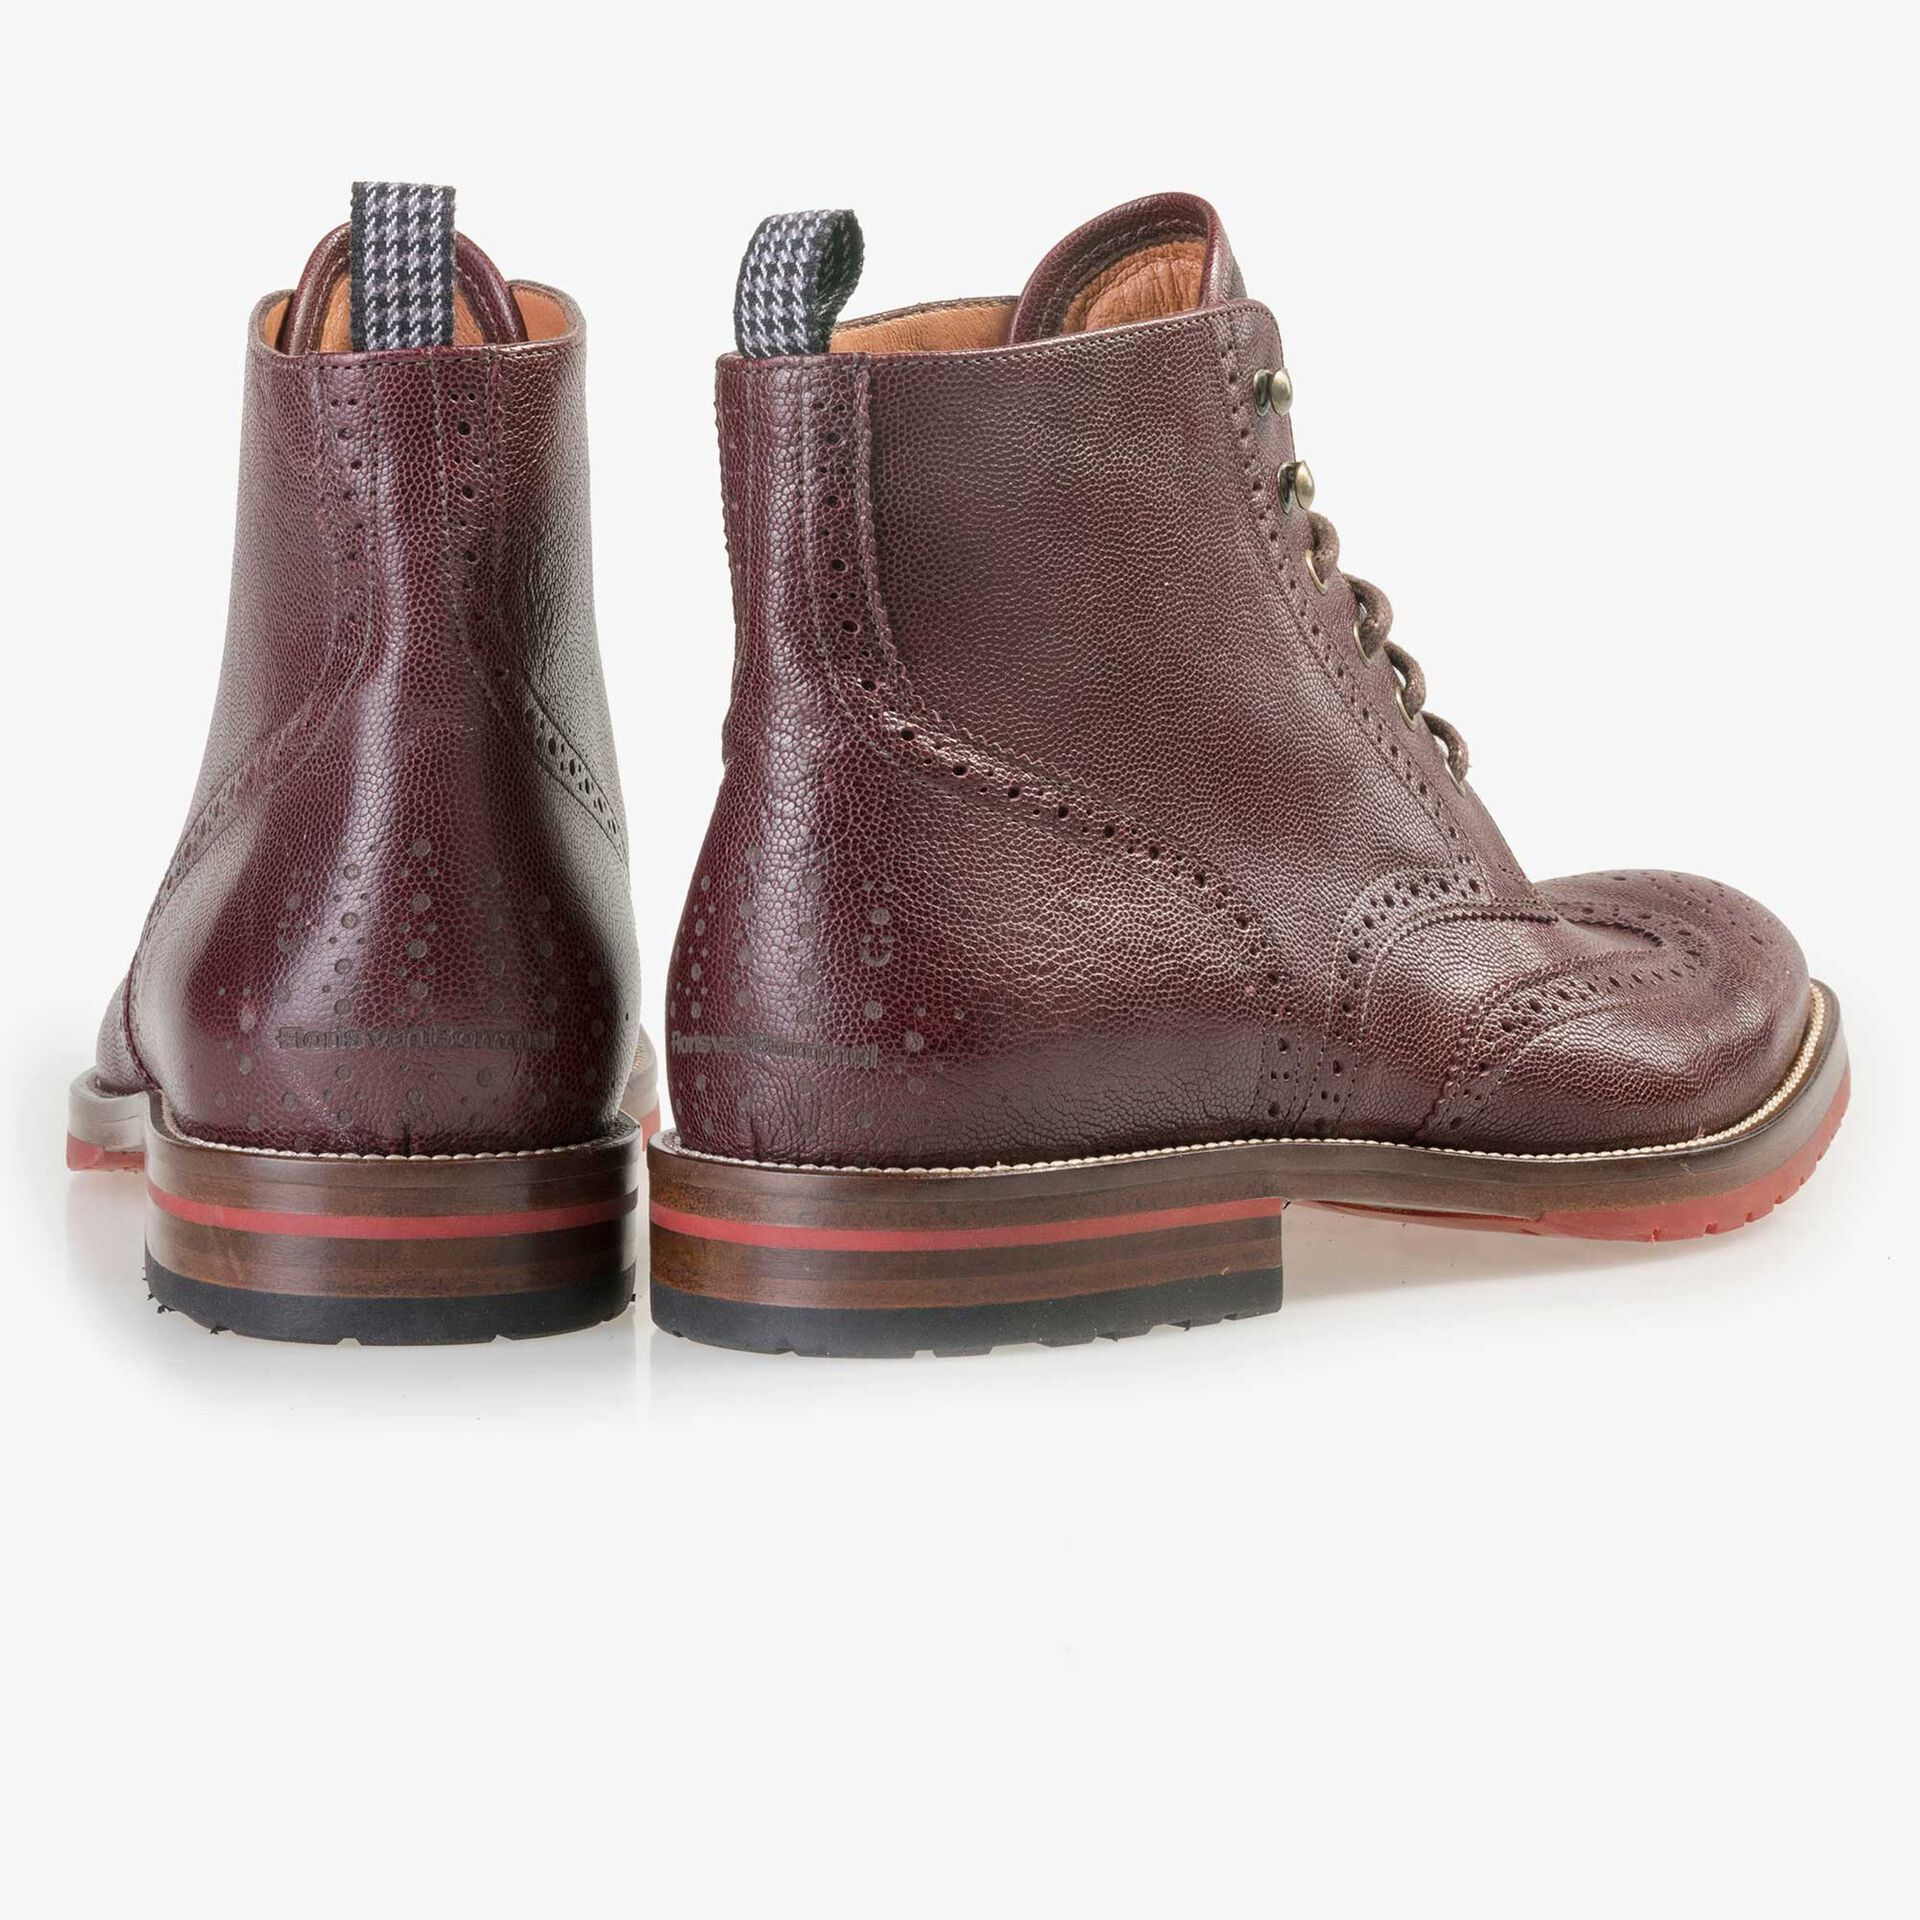 Floris van Bommel men's claret brogue leather lace boot